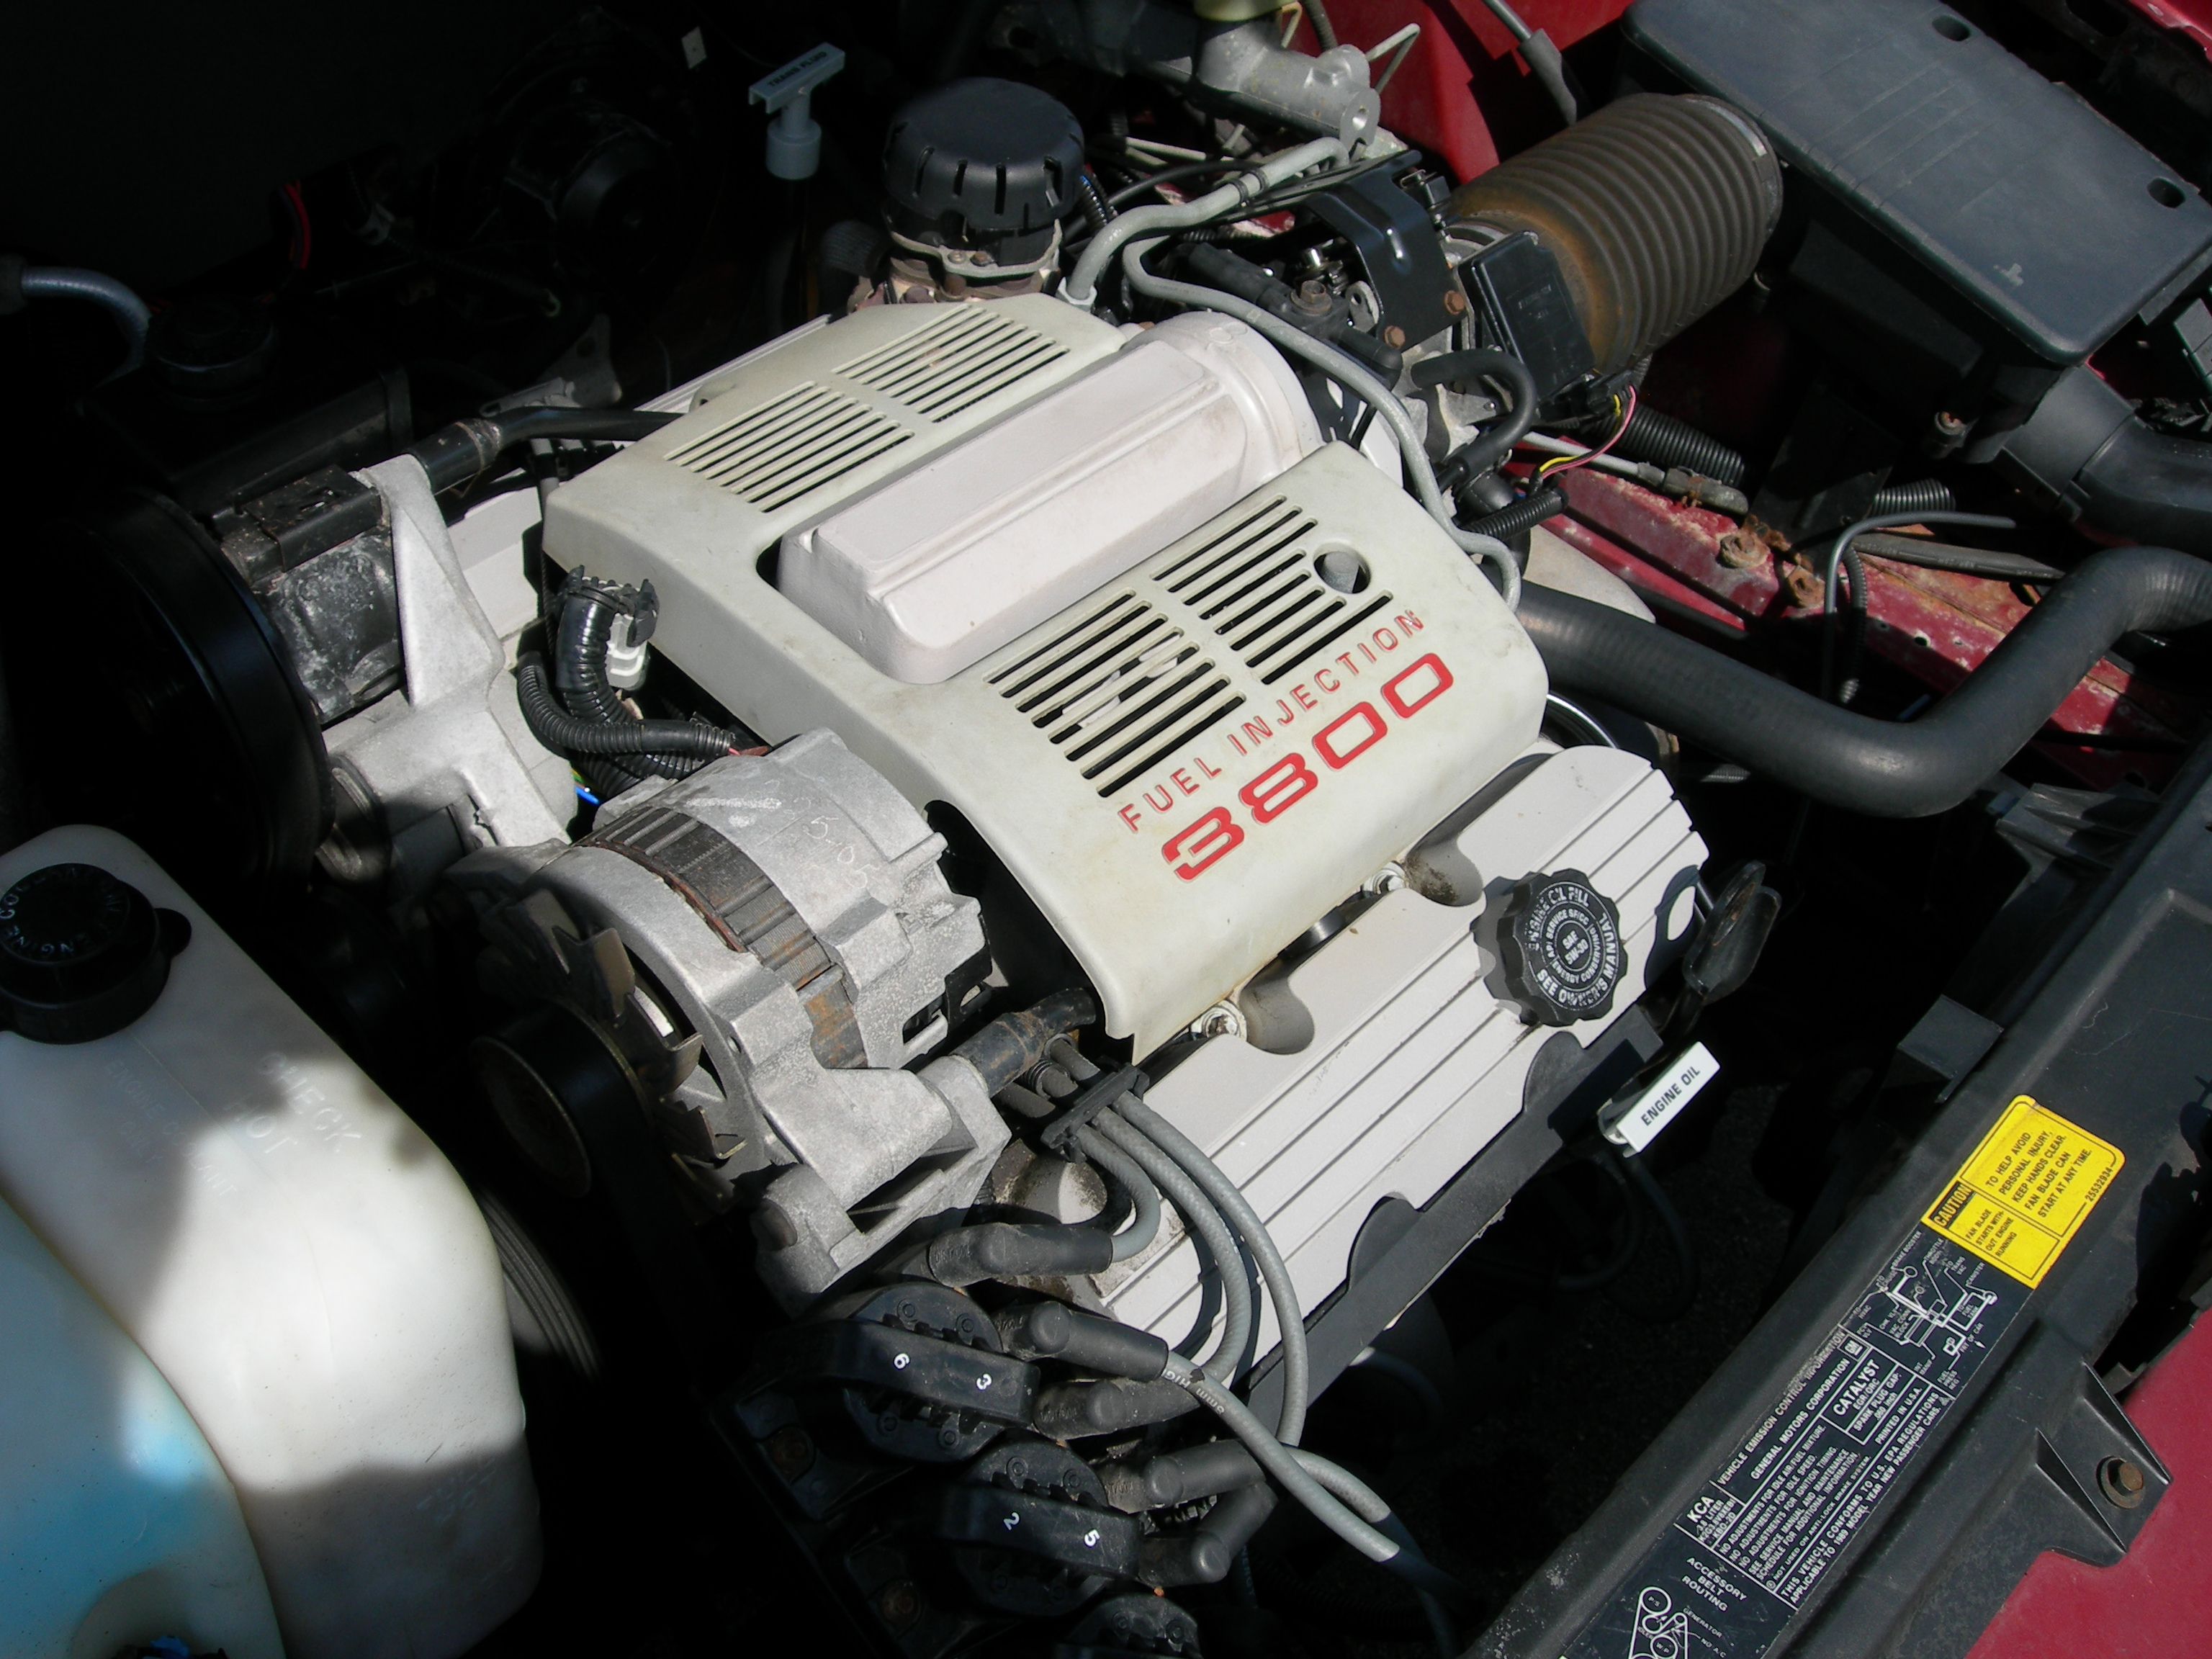 2000 Malibu V6 Engine Diagram Wiring Library. 1999 Chevrolet Malibu GM90 S Information And Specs 1998 Chevy Transmission Diagram. Wiring. 3800 Engine Ponent Diagram At Scoala.co